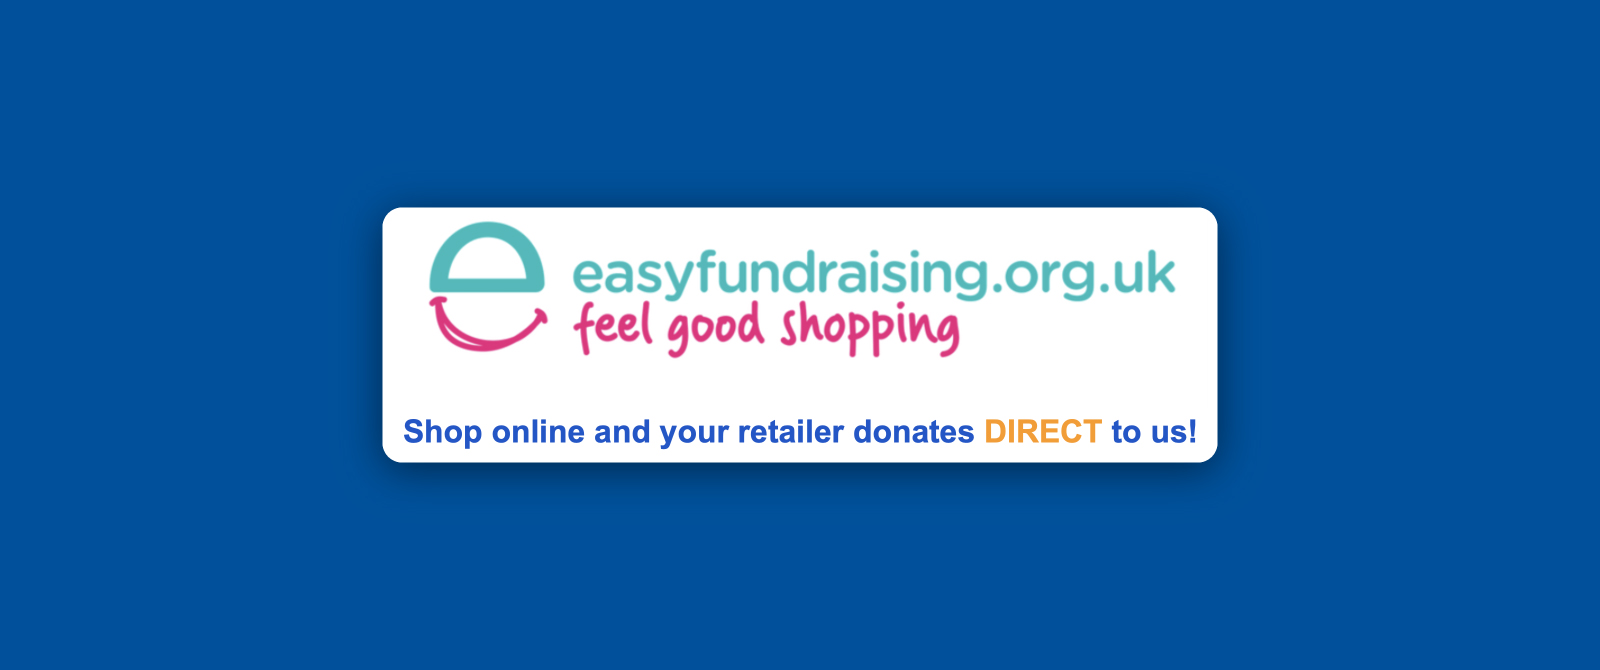 Let-your-retailers-donate-to-us